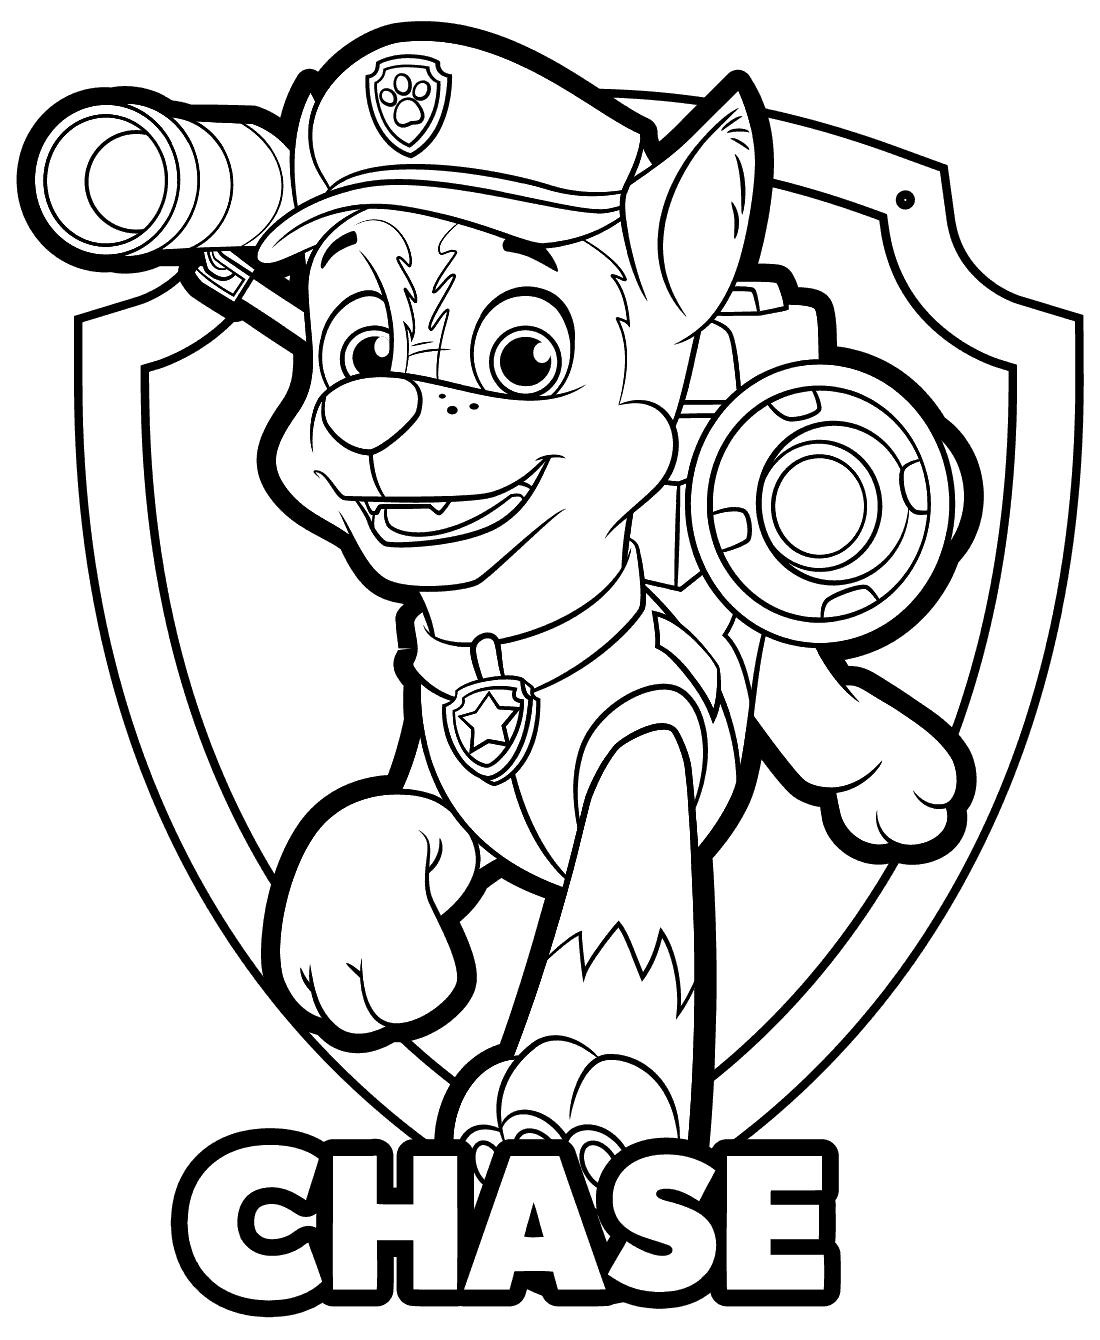 paw patrol coloring outline paw patrol coloring pages free download on clipartmag outline coloring patrol paw